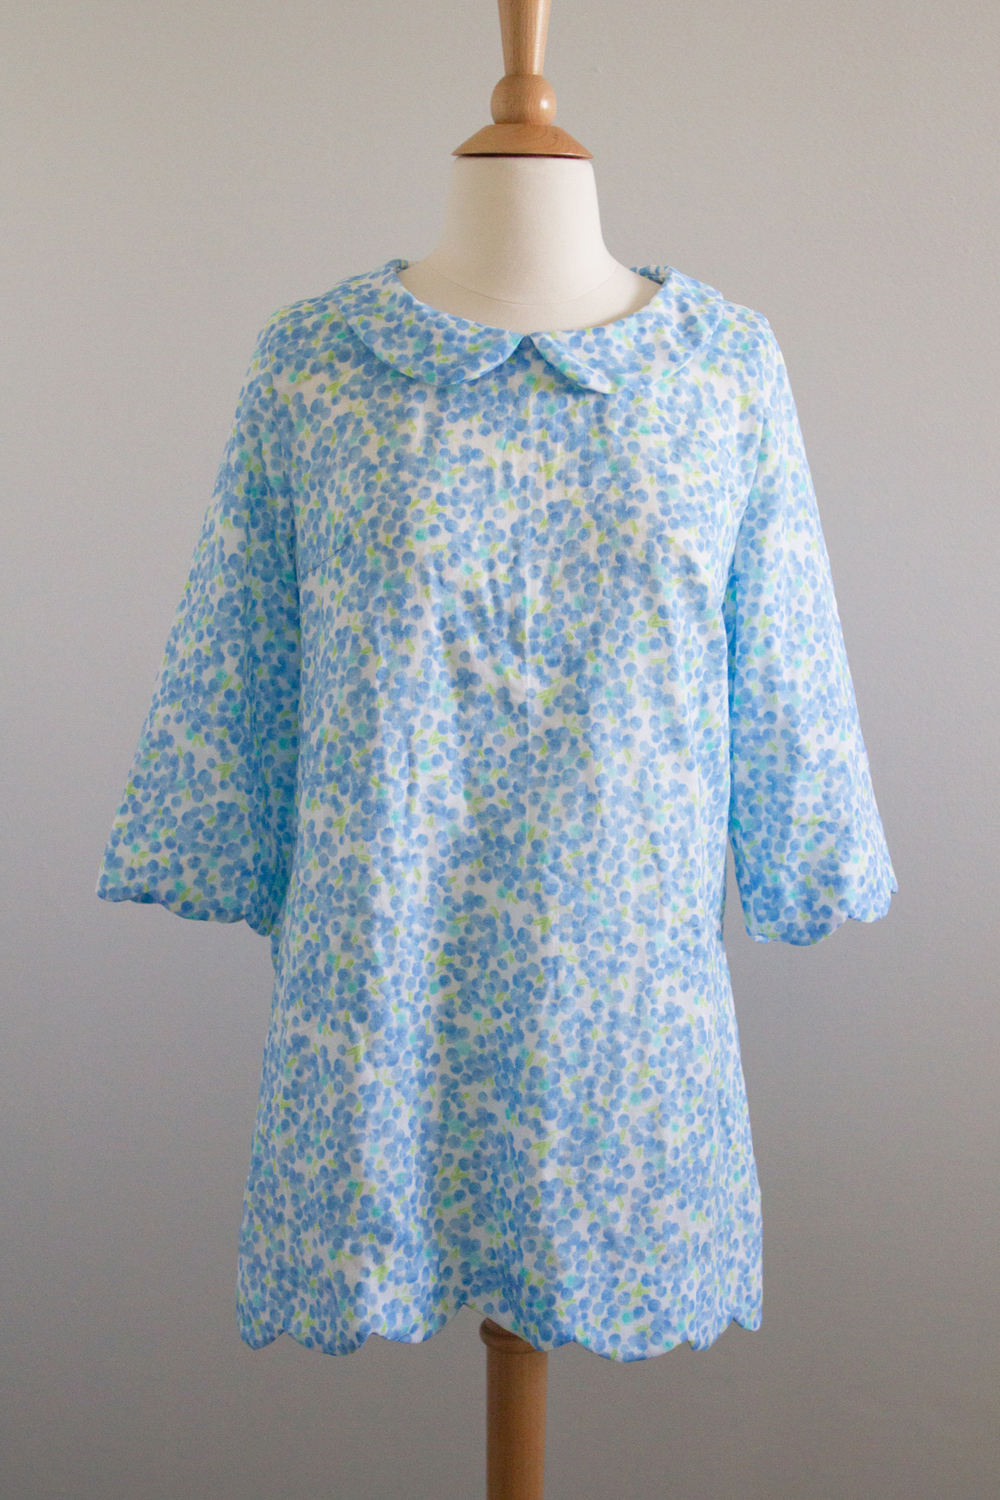 Blue shirt with scalloped hems